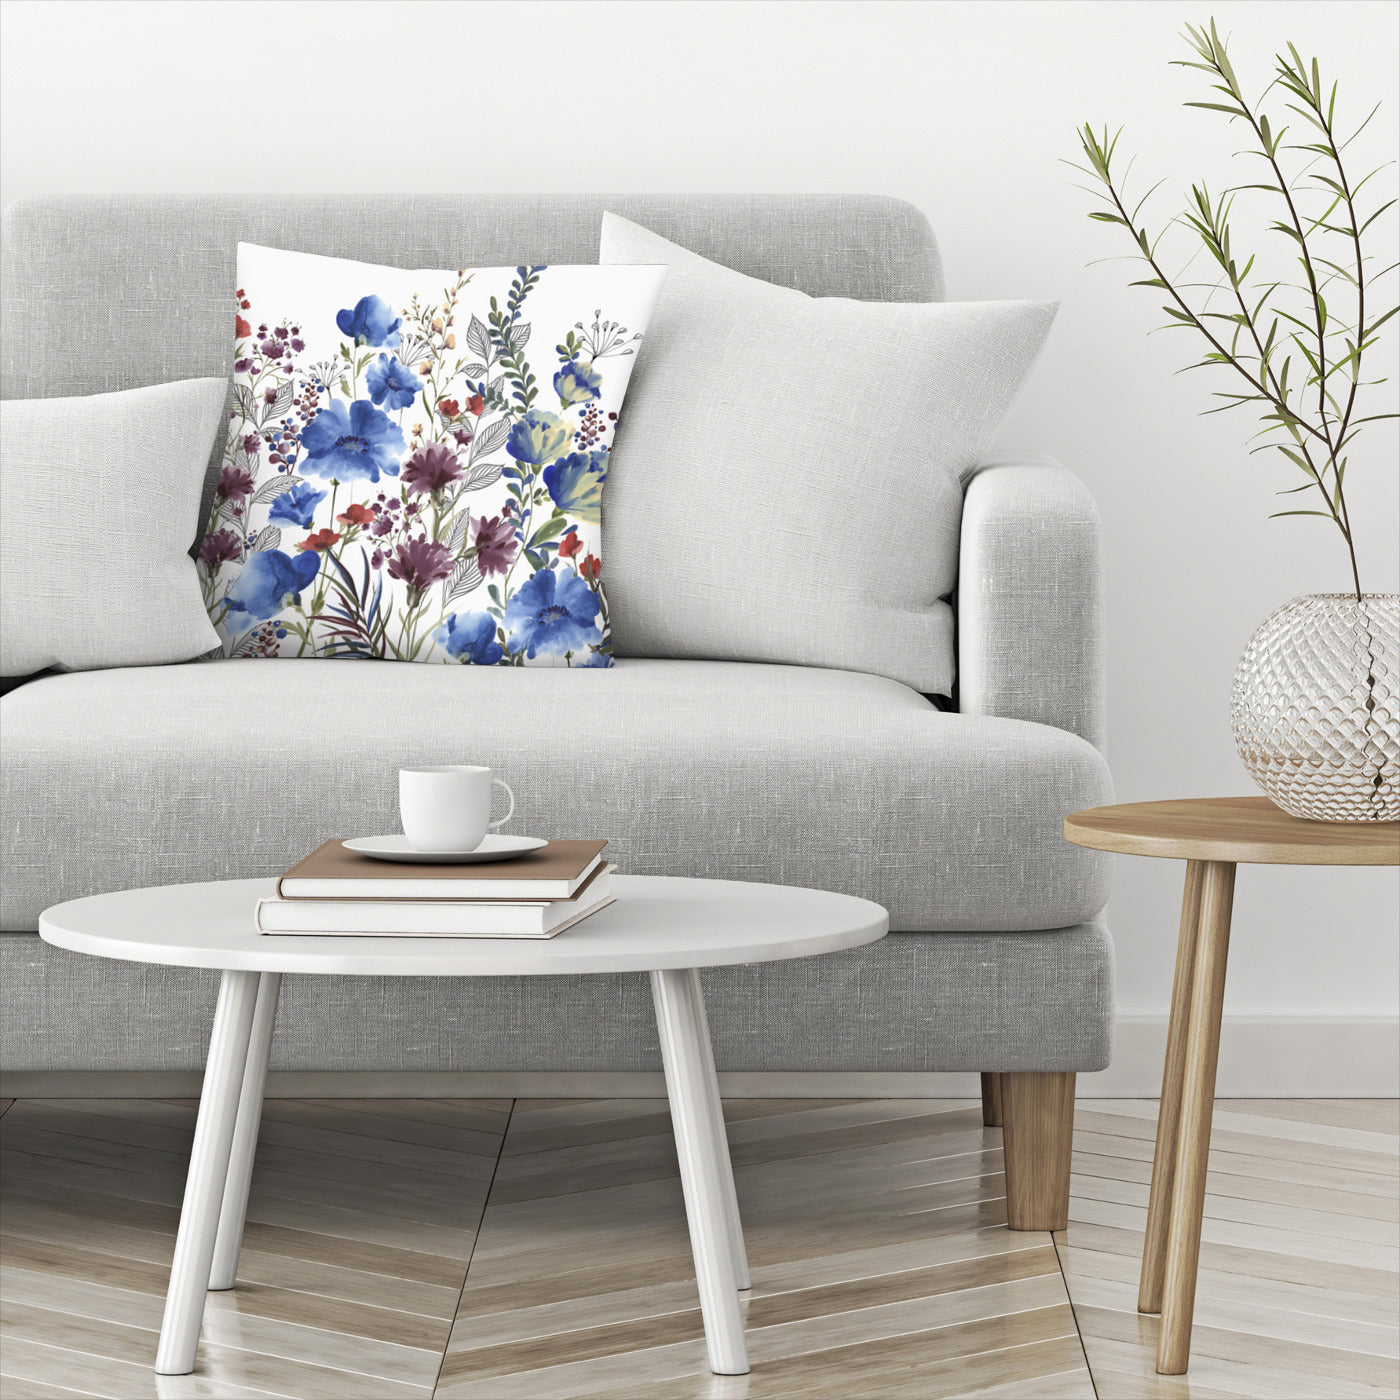 Willowherb Ii by PI Creative Art Decorative Pillow - Decorative Pillow - Americanflat